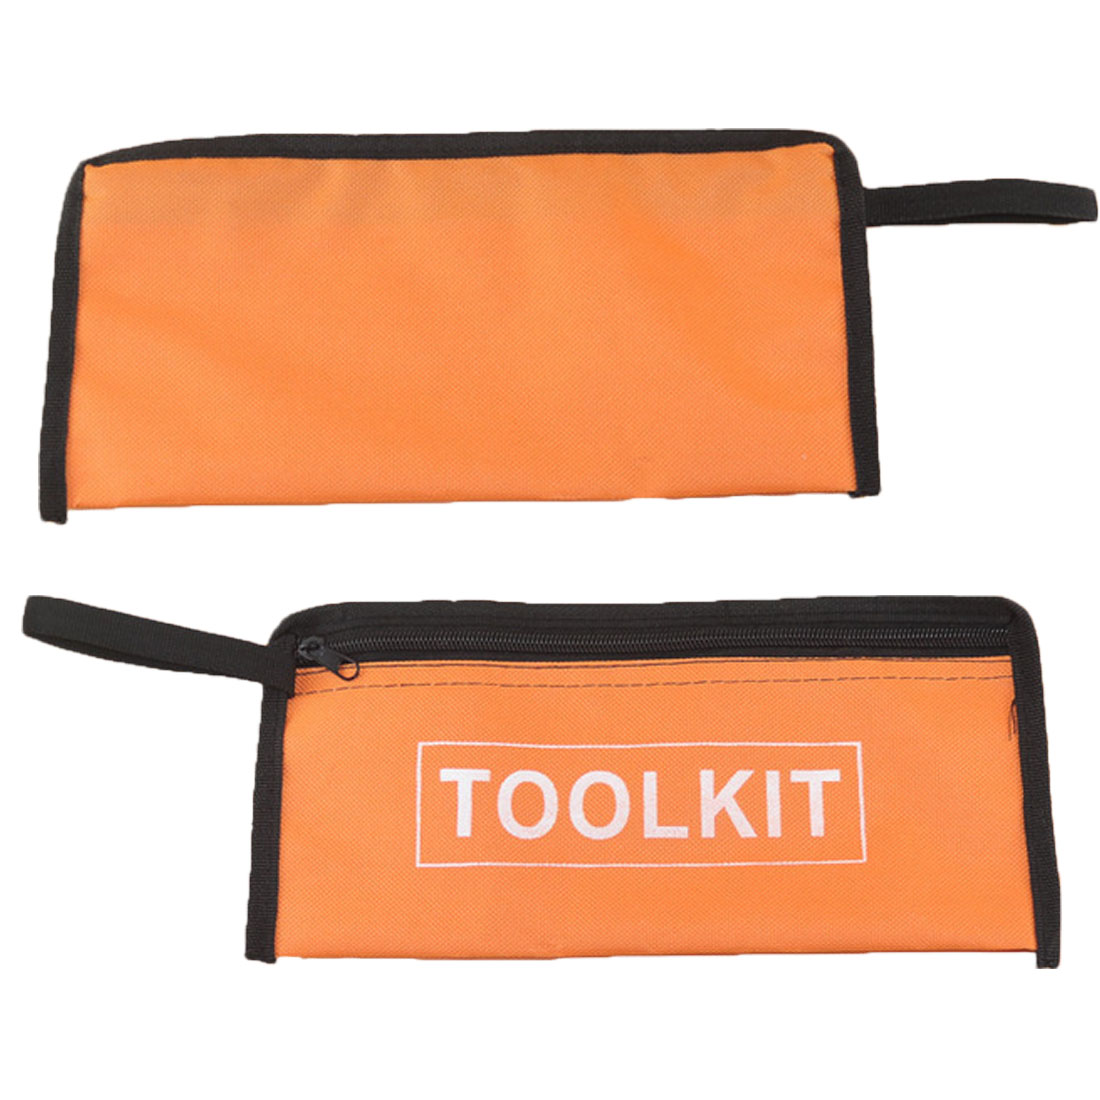 New Hardware Tool Toolkit Storage Bag Oxford Handy Zip Pouch Handbag Waterproof